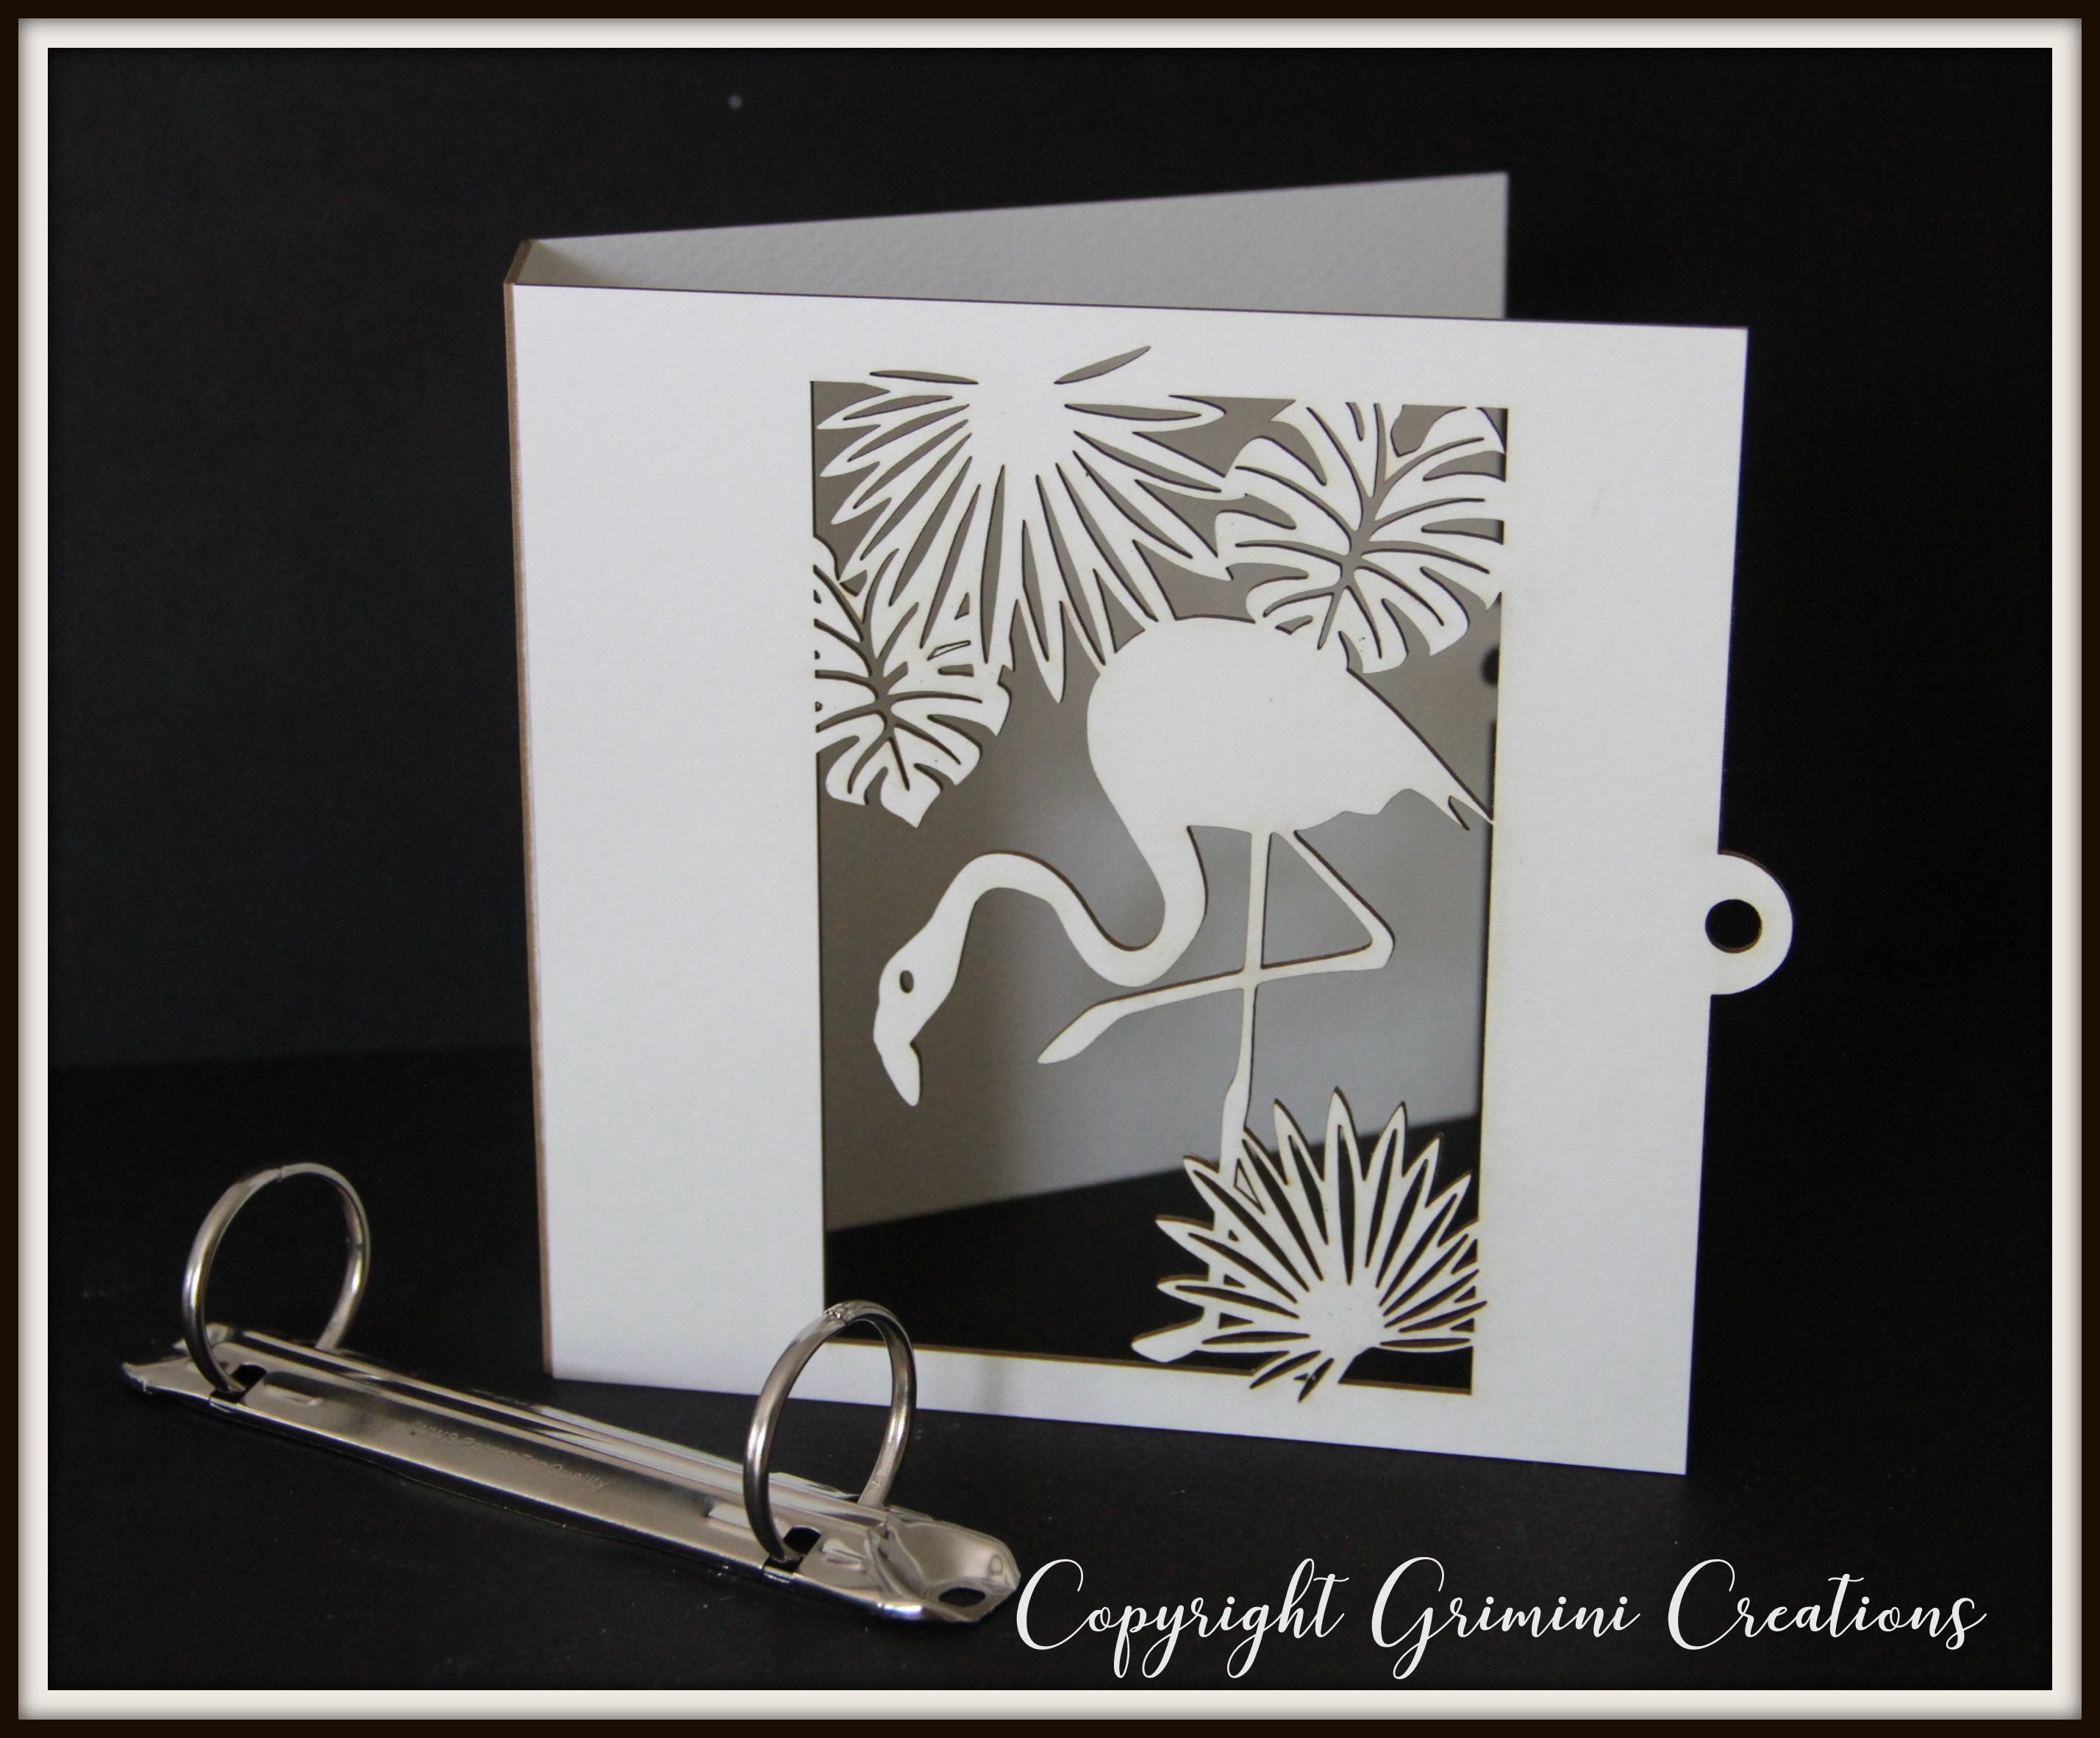 Peinture Flamant Point De Vente Structure 14x14 Flamant Rose Griminicreations